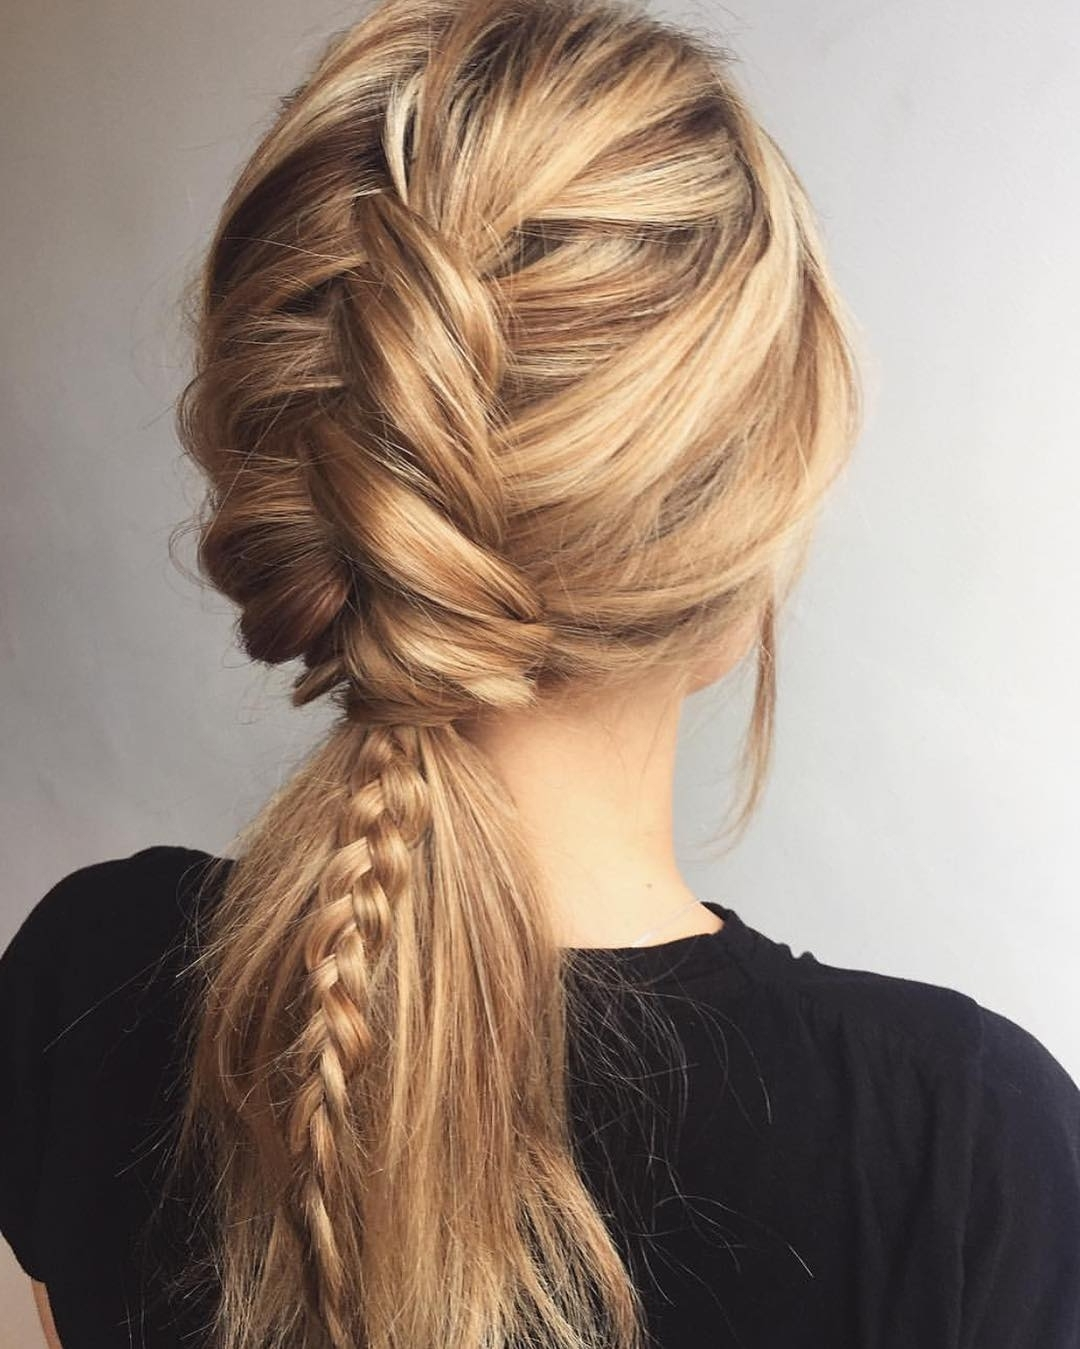 10 Ultra Ponytail Braided Hairstyles For Long Hair; Parties! 2018 Pertaining To Well Known Pony Hairstyles With Textured Braid (View 1 of 20)